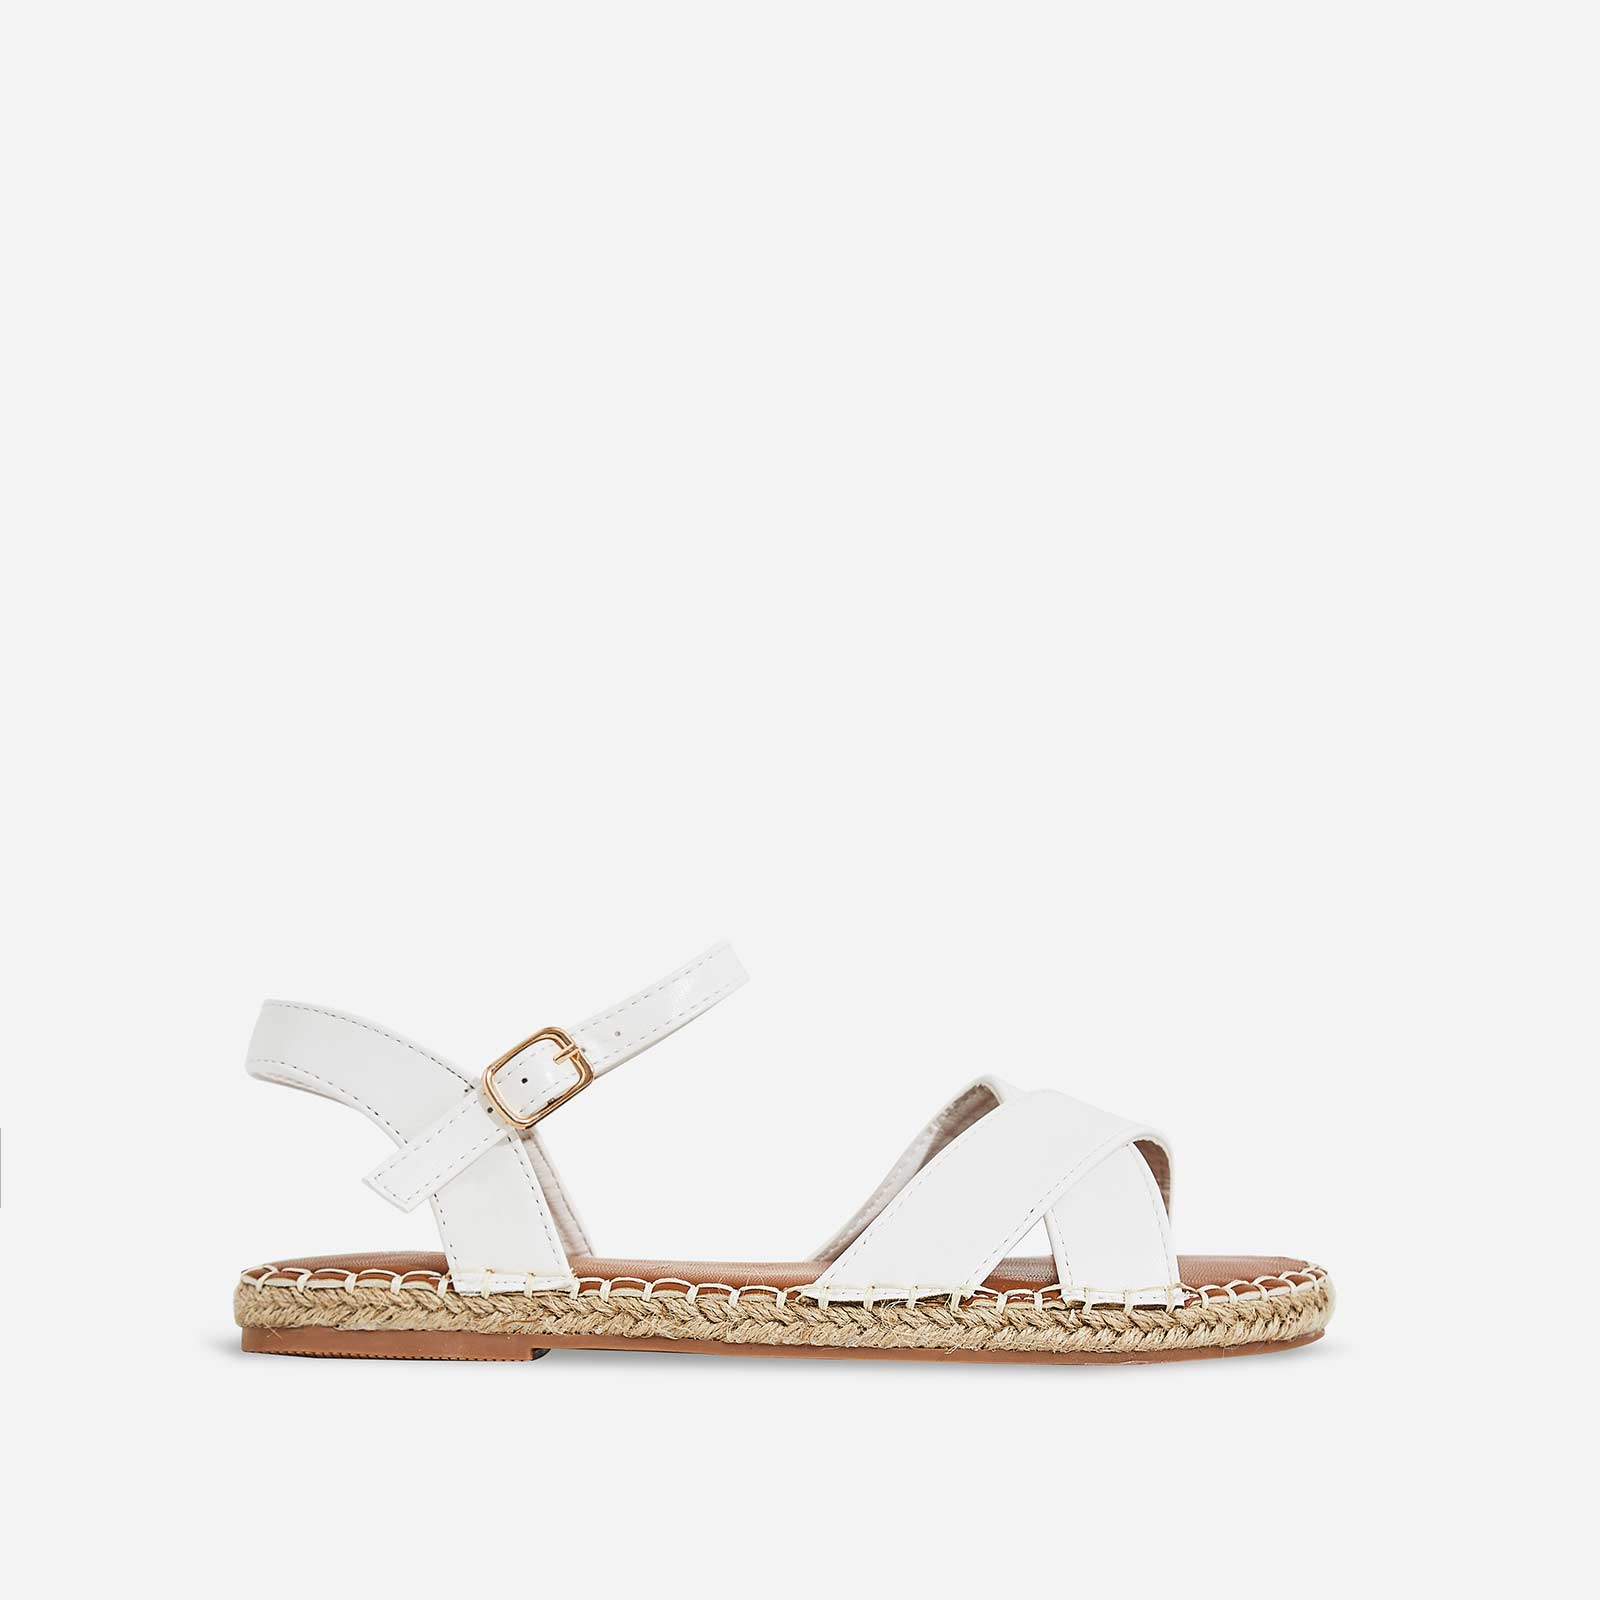 Mirren Espadrille Flat Sandal In White Faux Leather